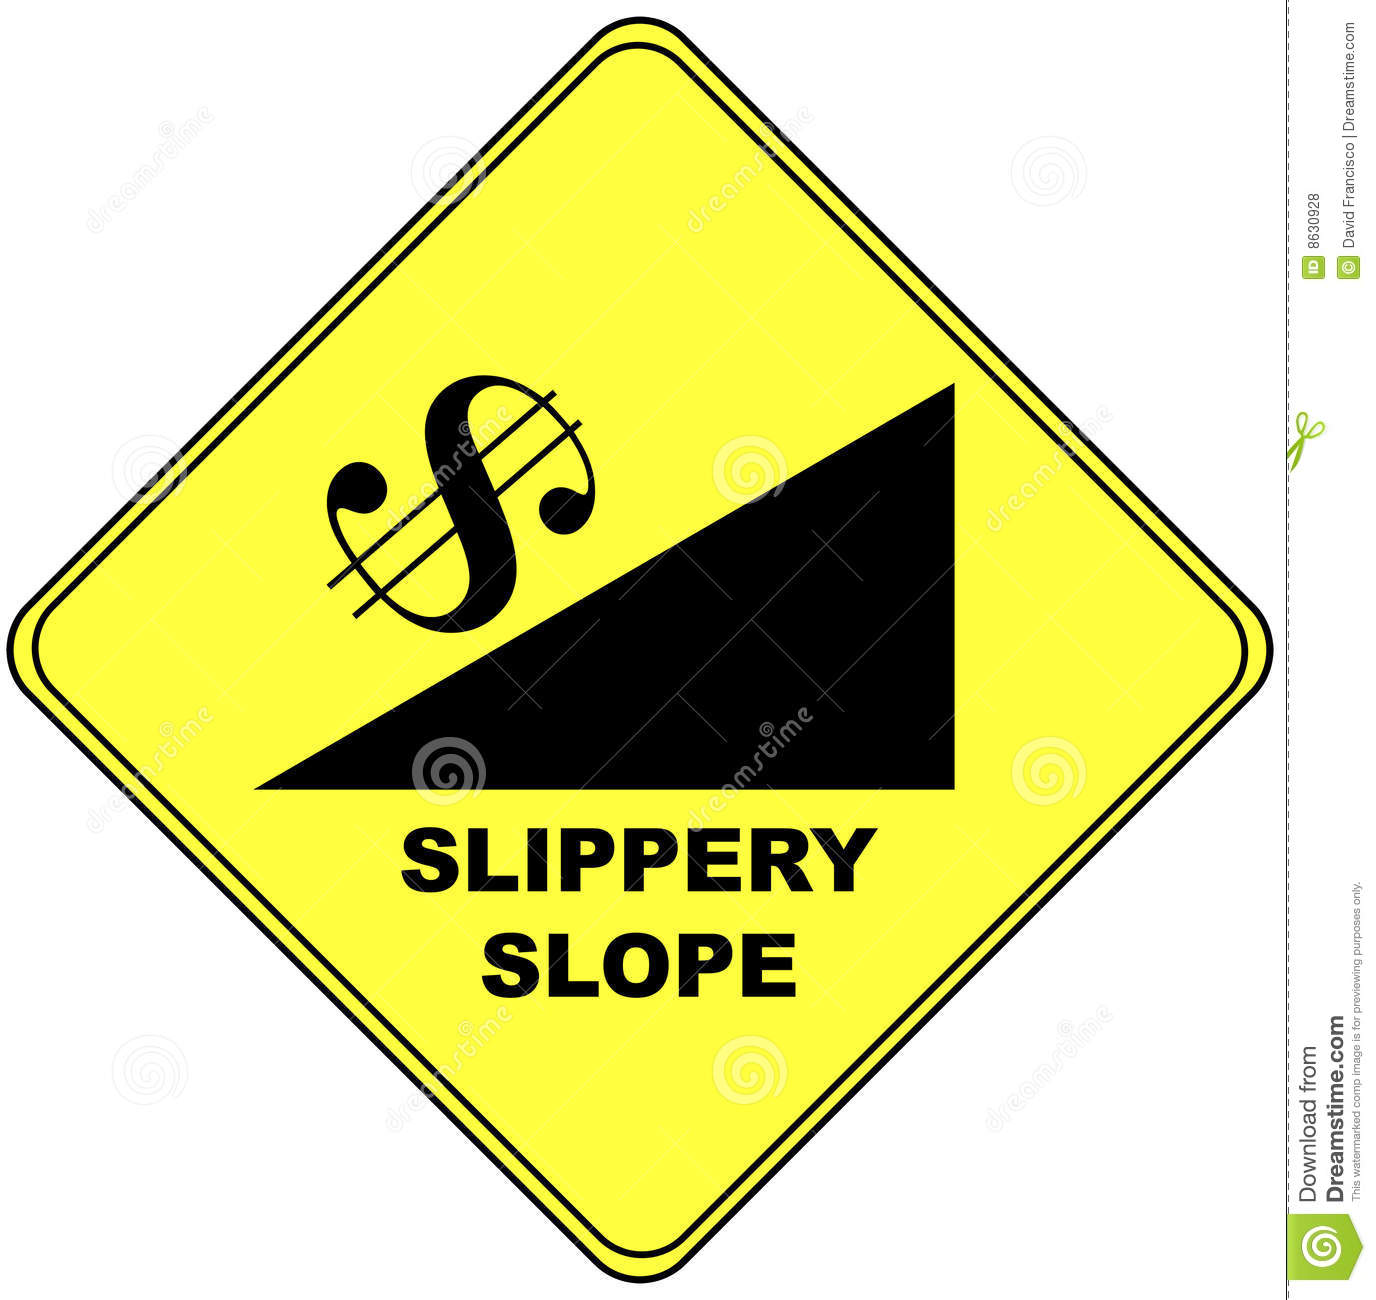 a slippery slope Start studying slippery slope learn vocabulary, terms, and more with flashcards, games, and other study tools.